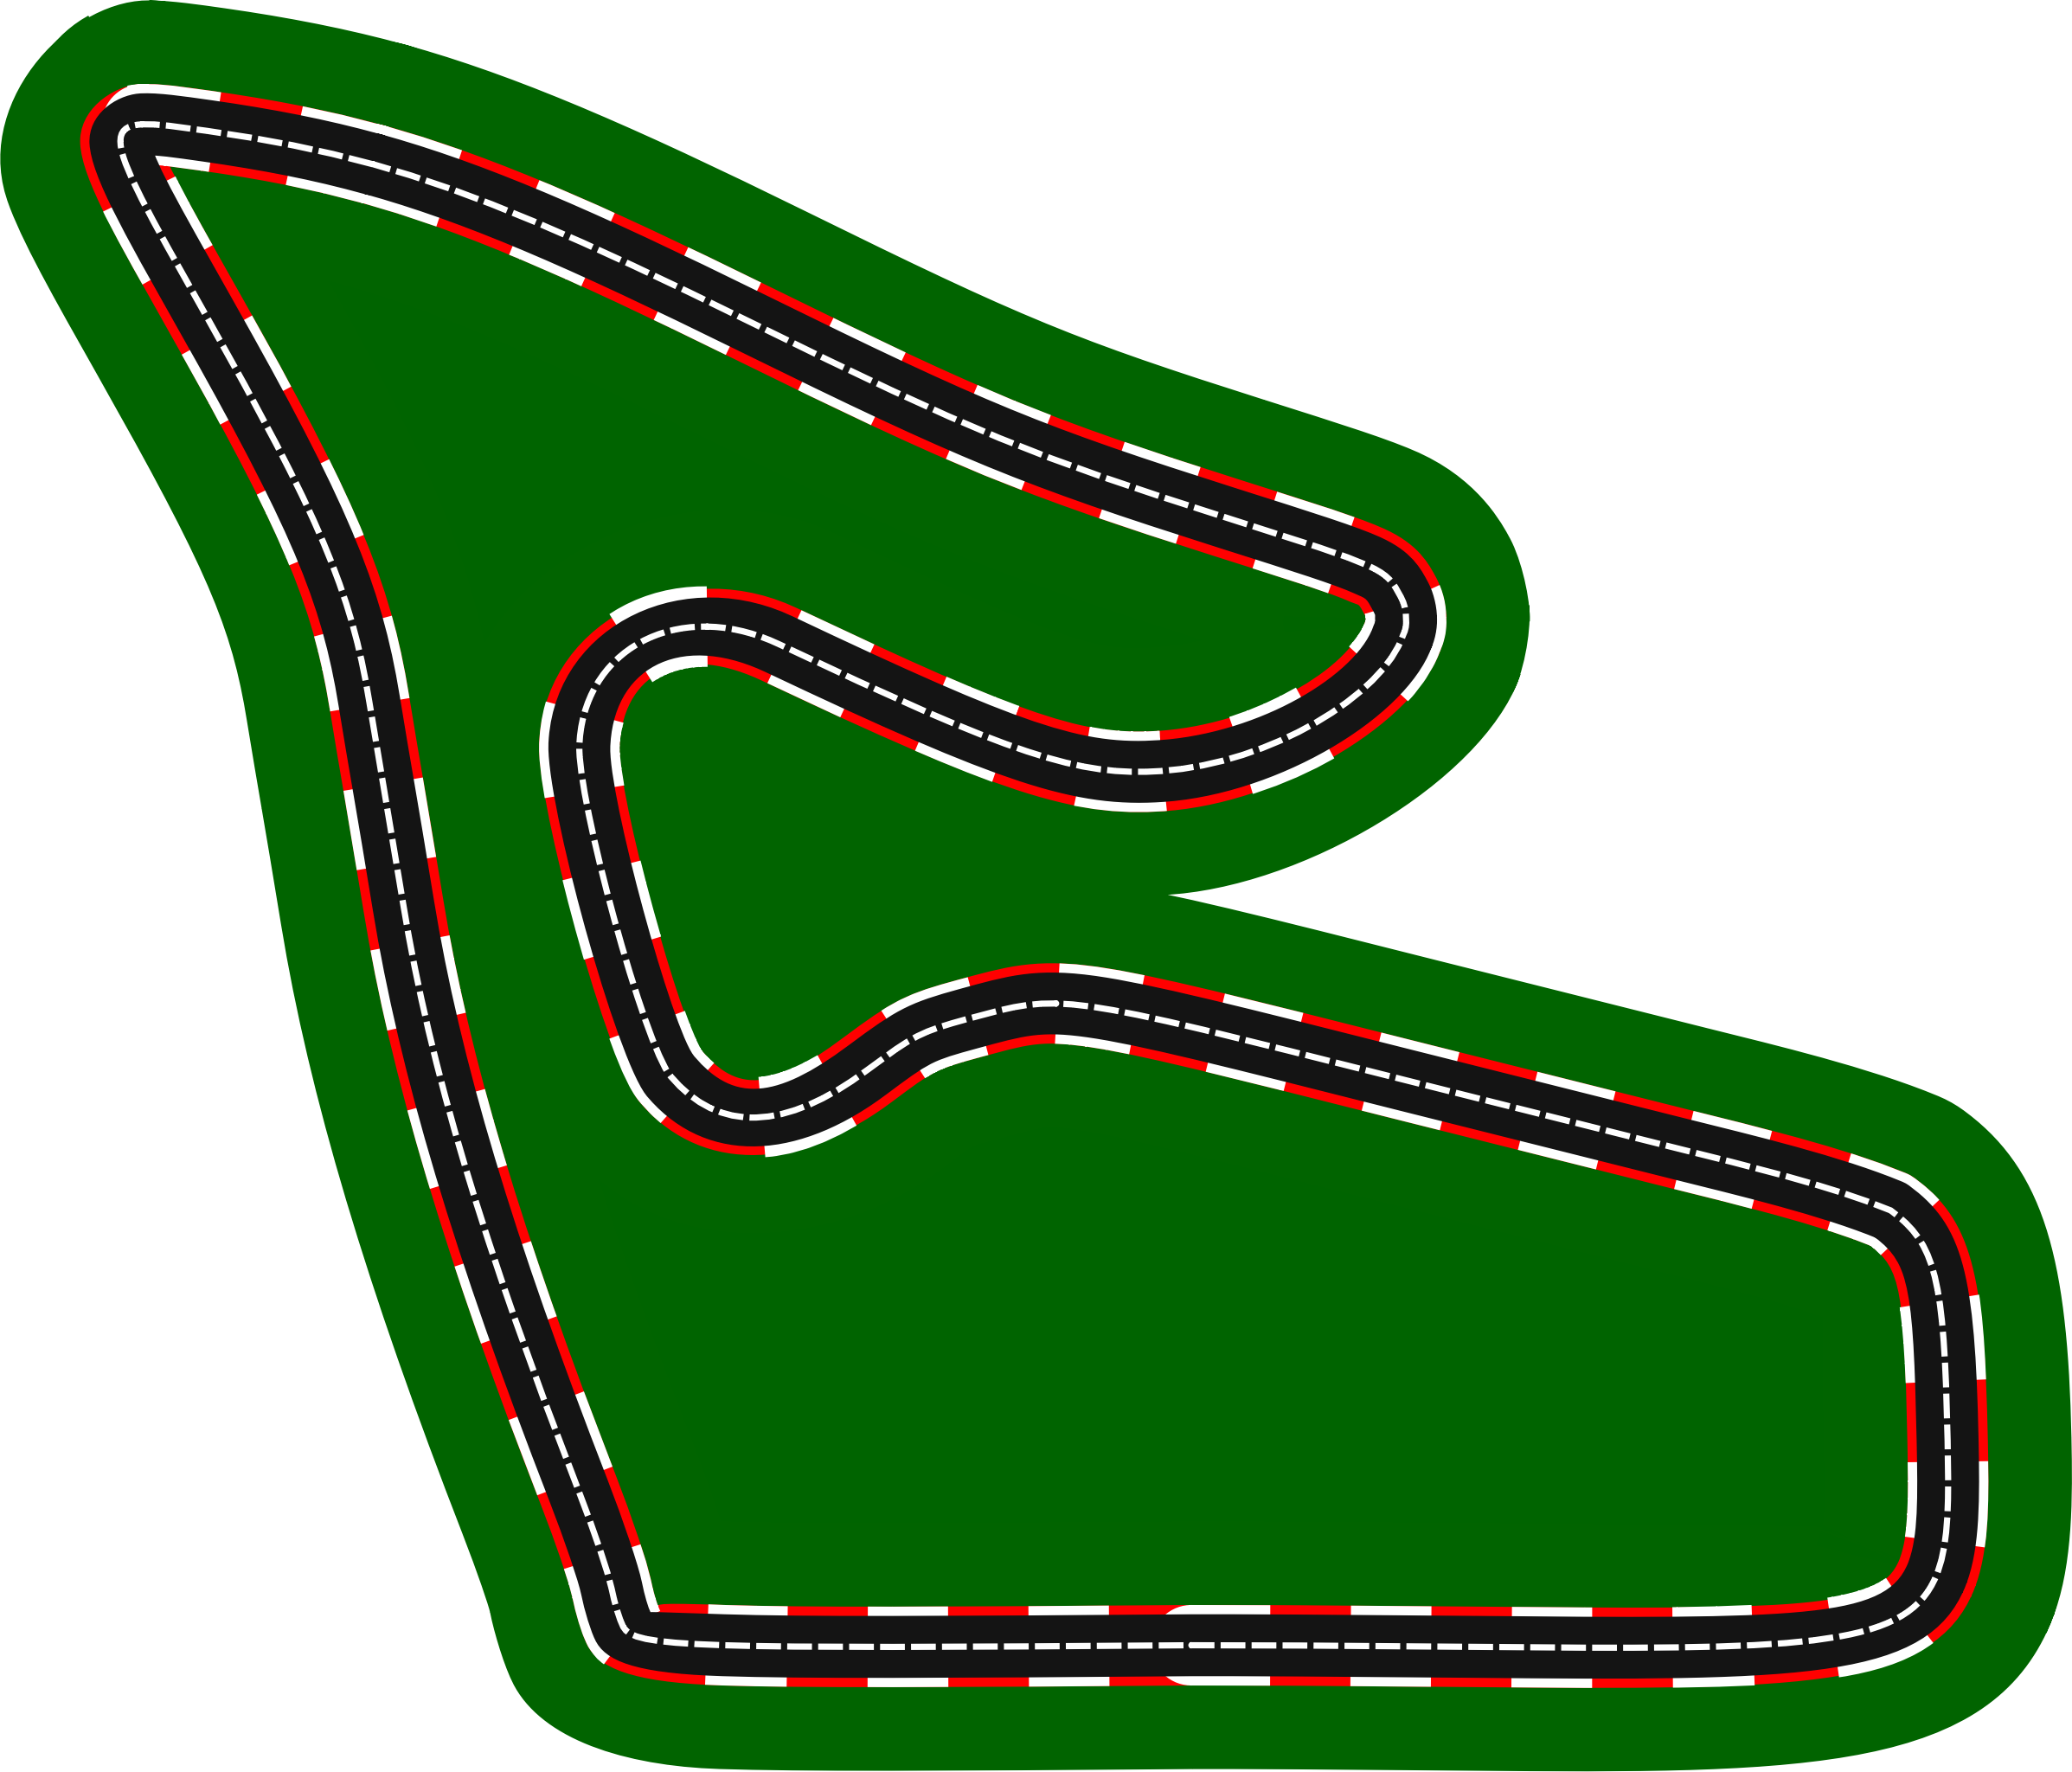 F1 circuits 2014-2018 - Red Bull Ring by Firkin